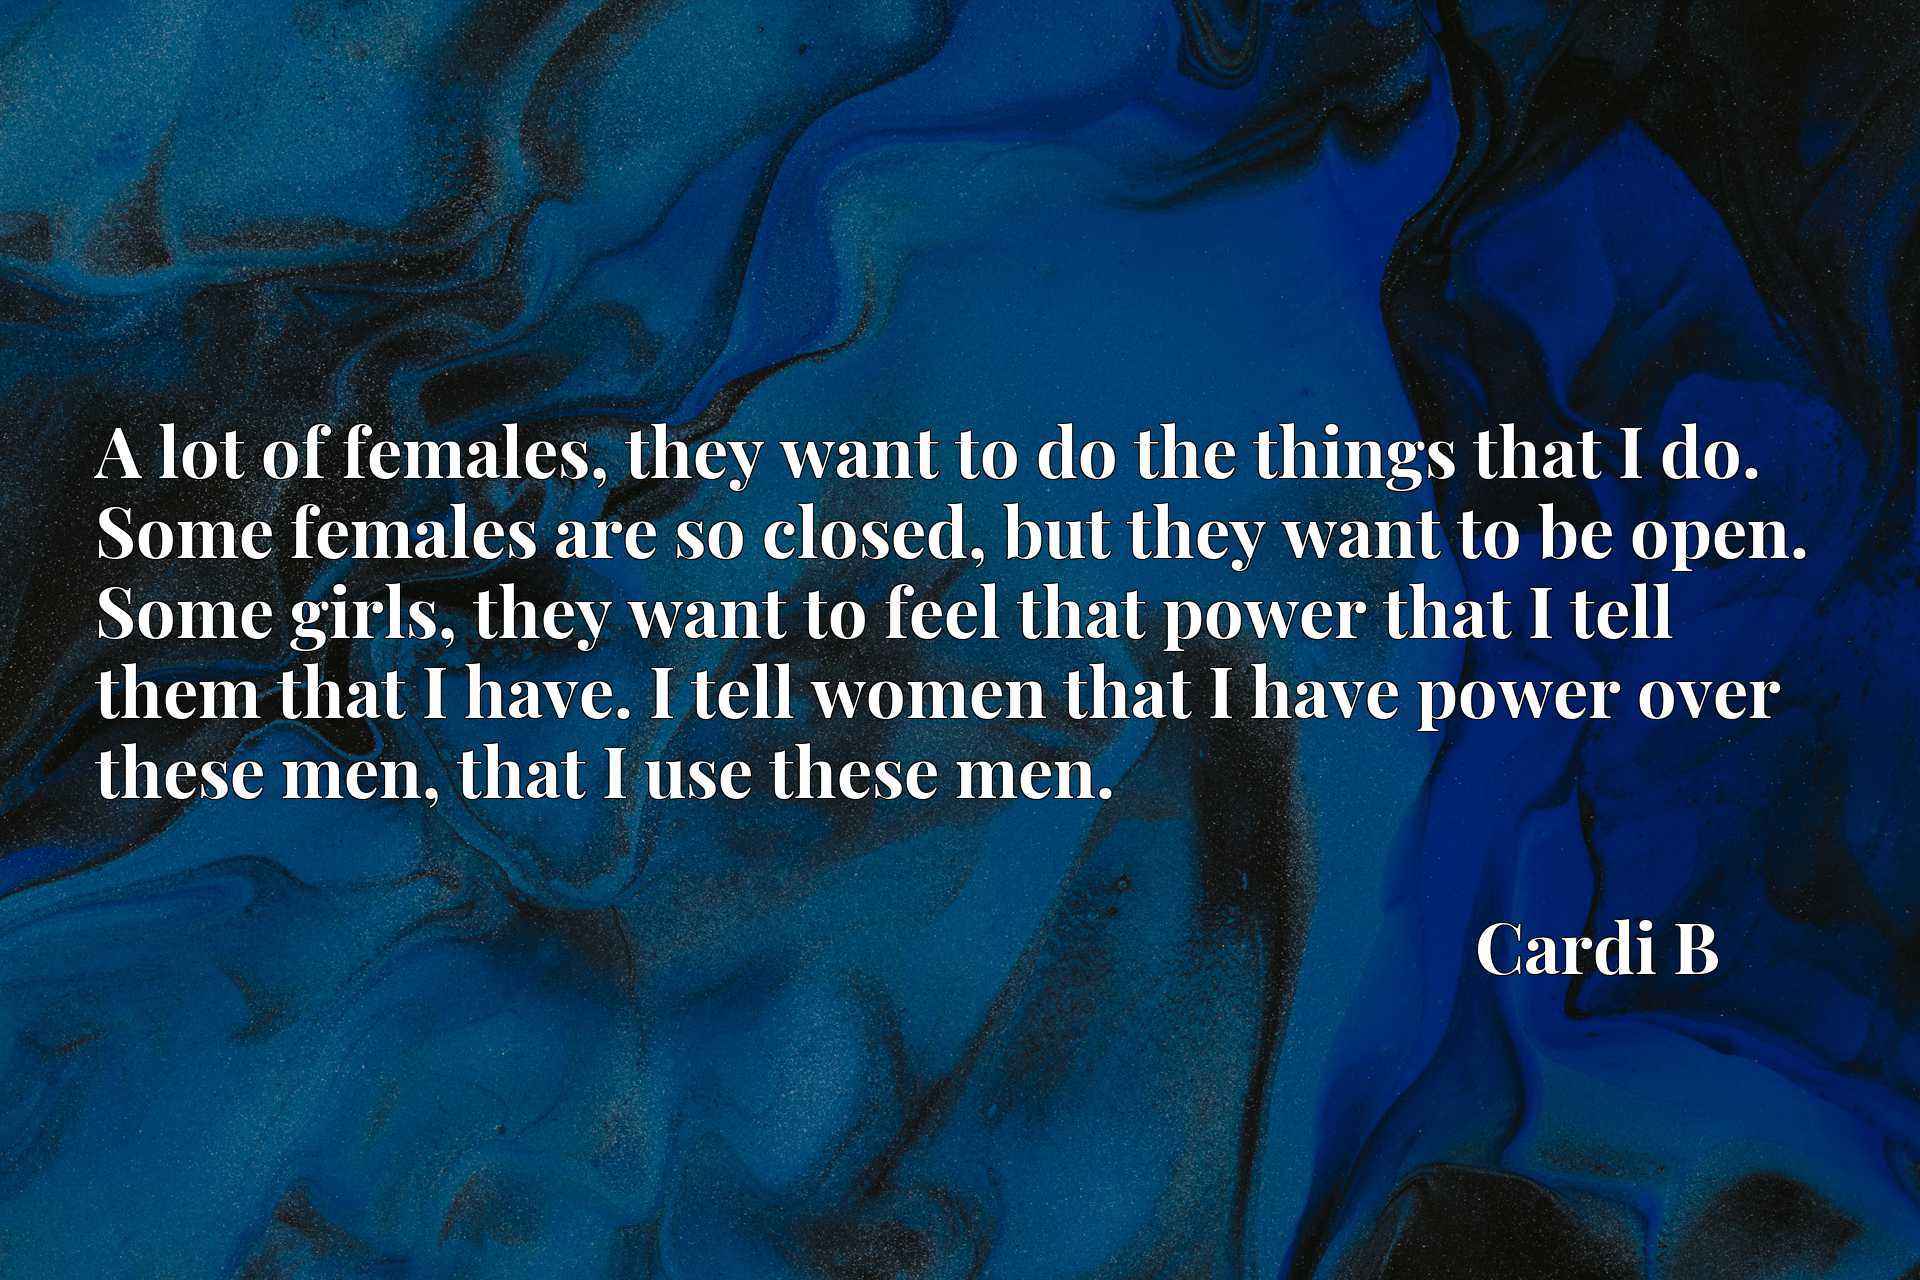 A lot of females, they want to do the things that I do. Some females are so closed, but they want to be open. Some girls, they want to feel that power that I tell them that I have. I tell women that I have power over these men, that I use these men.